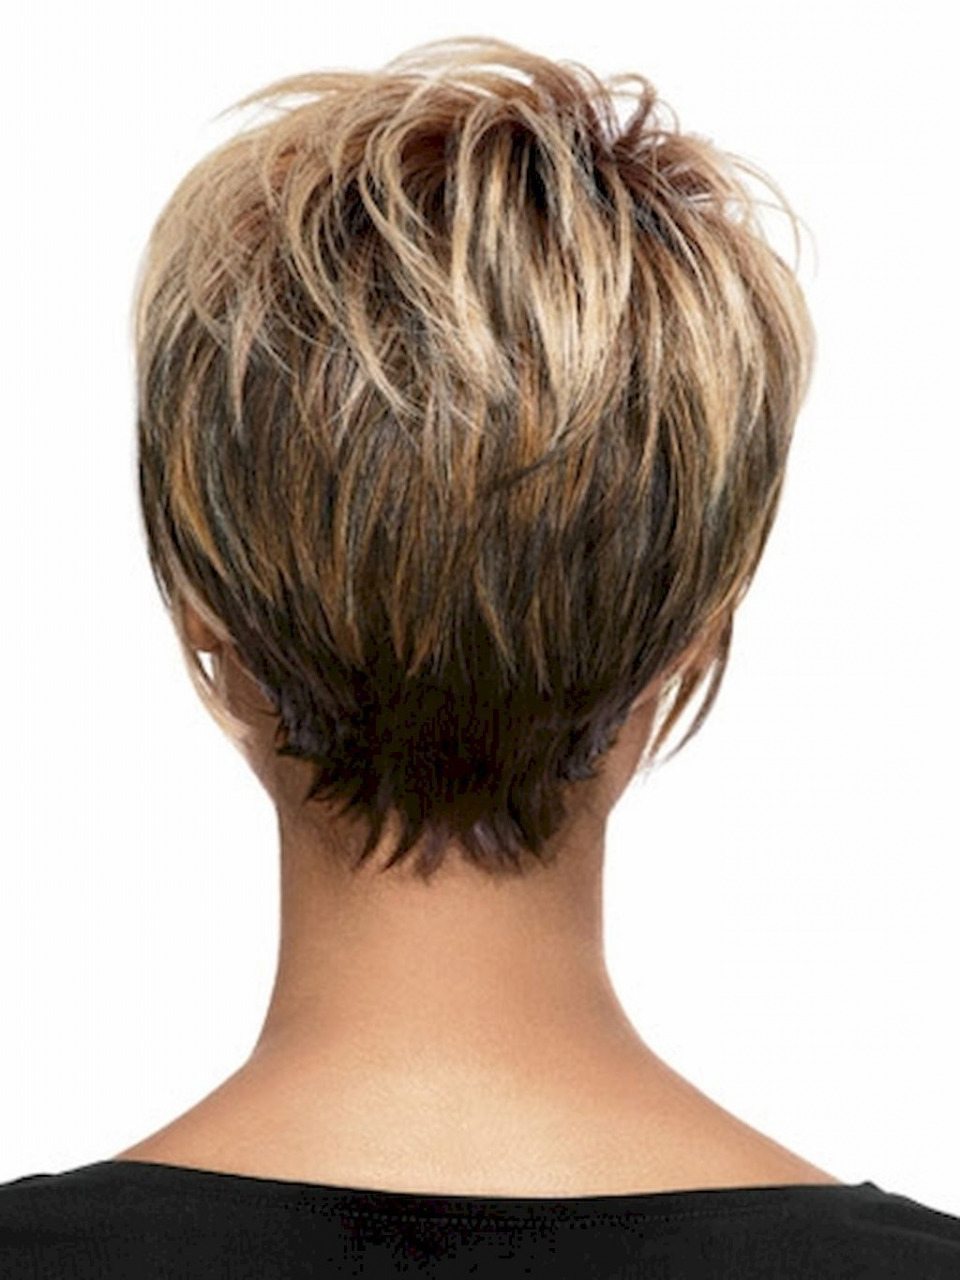 99 Low Maintenance Short Hairstyles New Short Hair Styles From Bobs For Easy Maintenance Short Hairstyles (View 8 of 25)